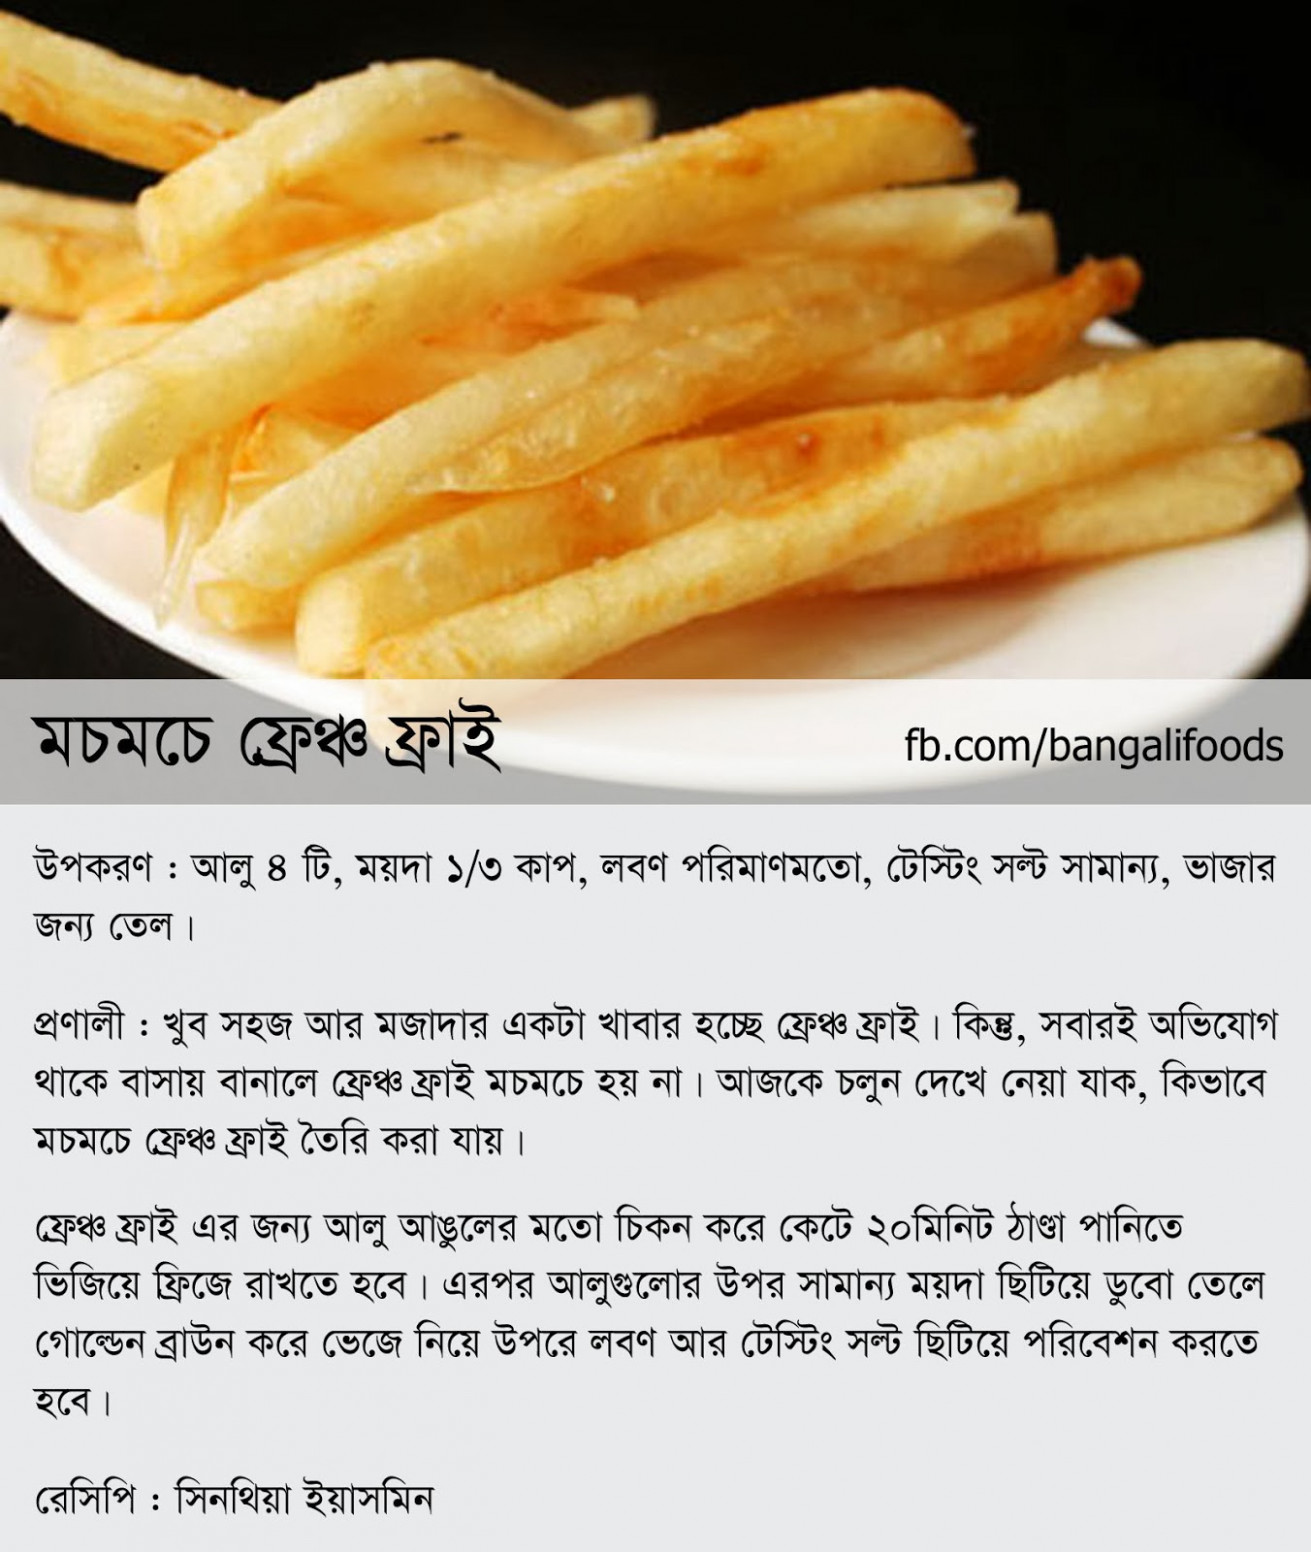 Bangali Foods: Recipe from Synthia Yasmin